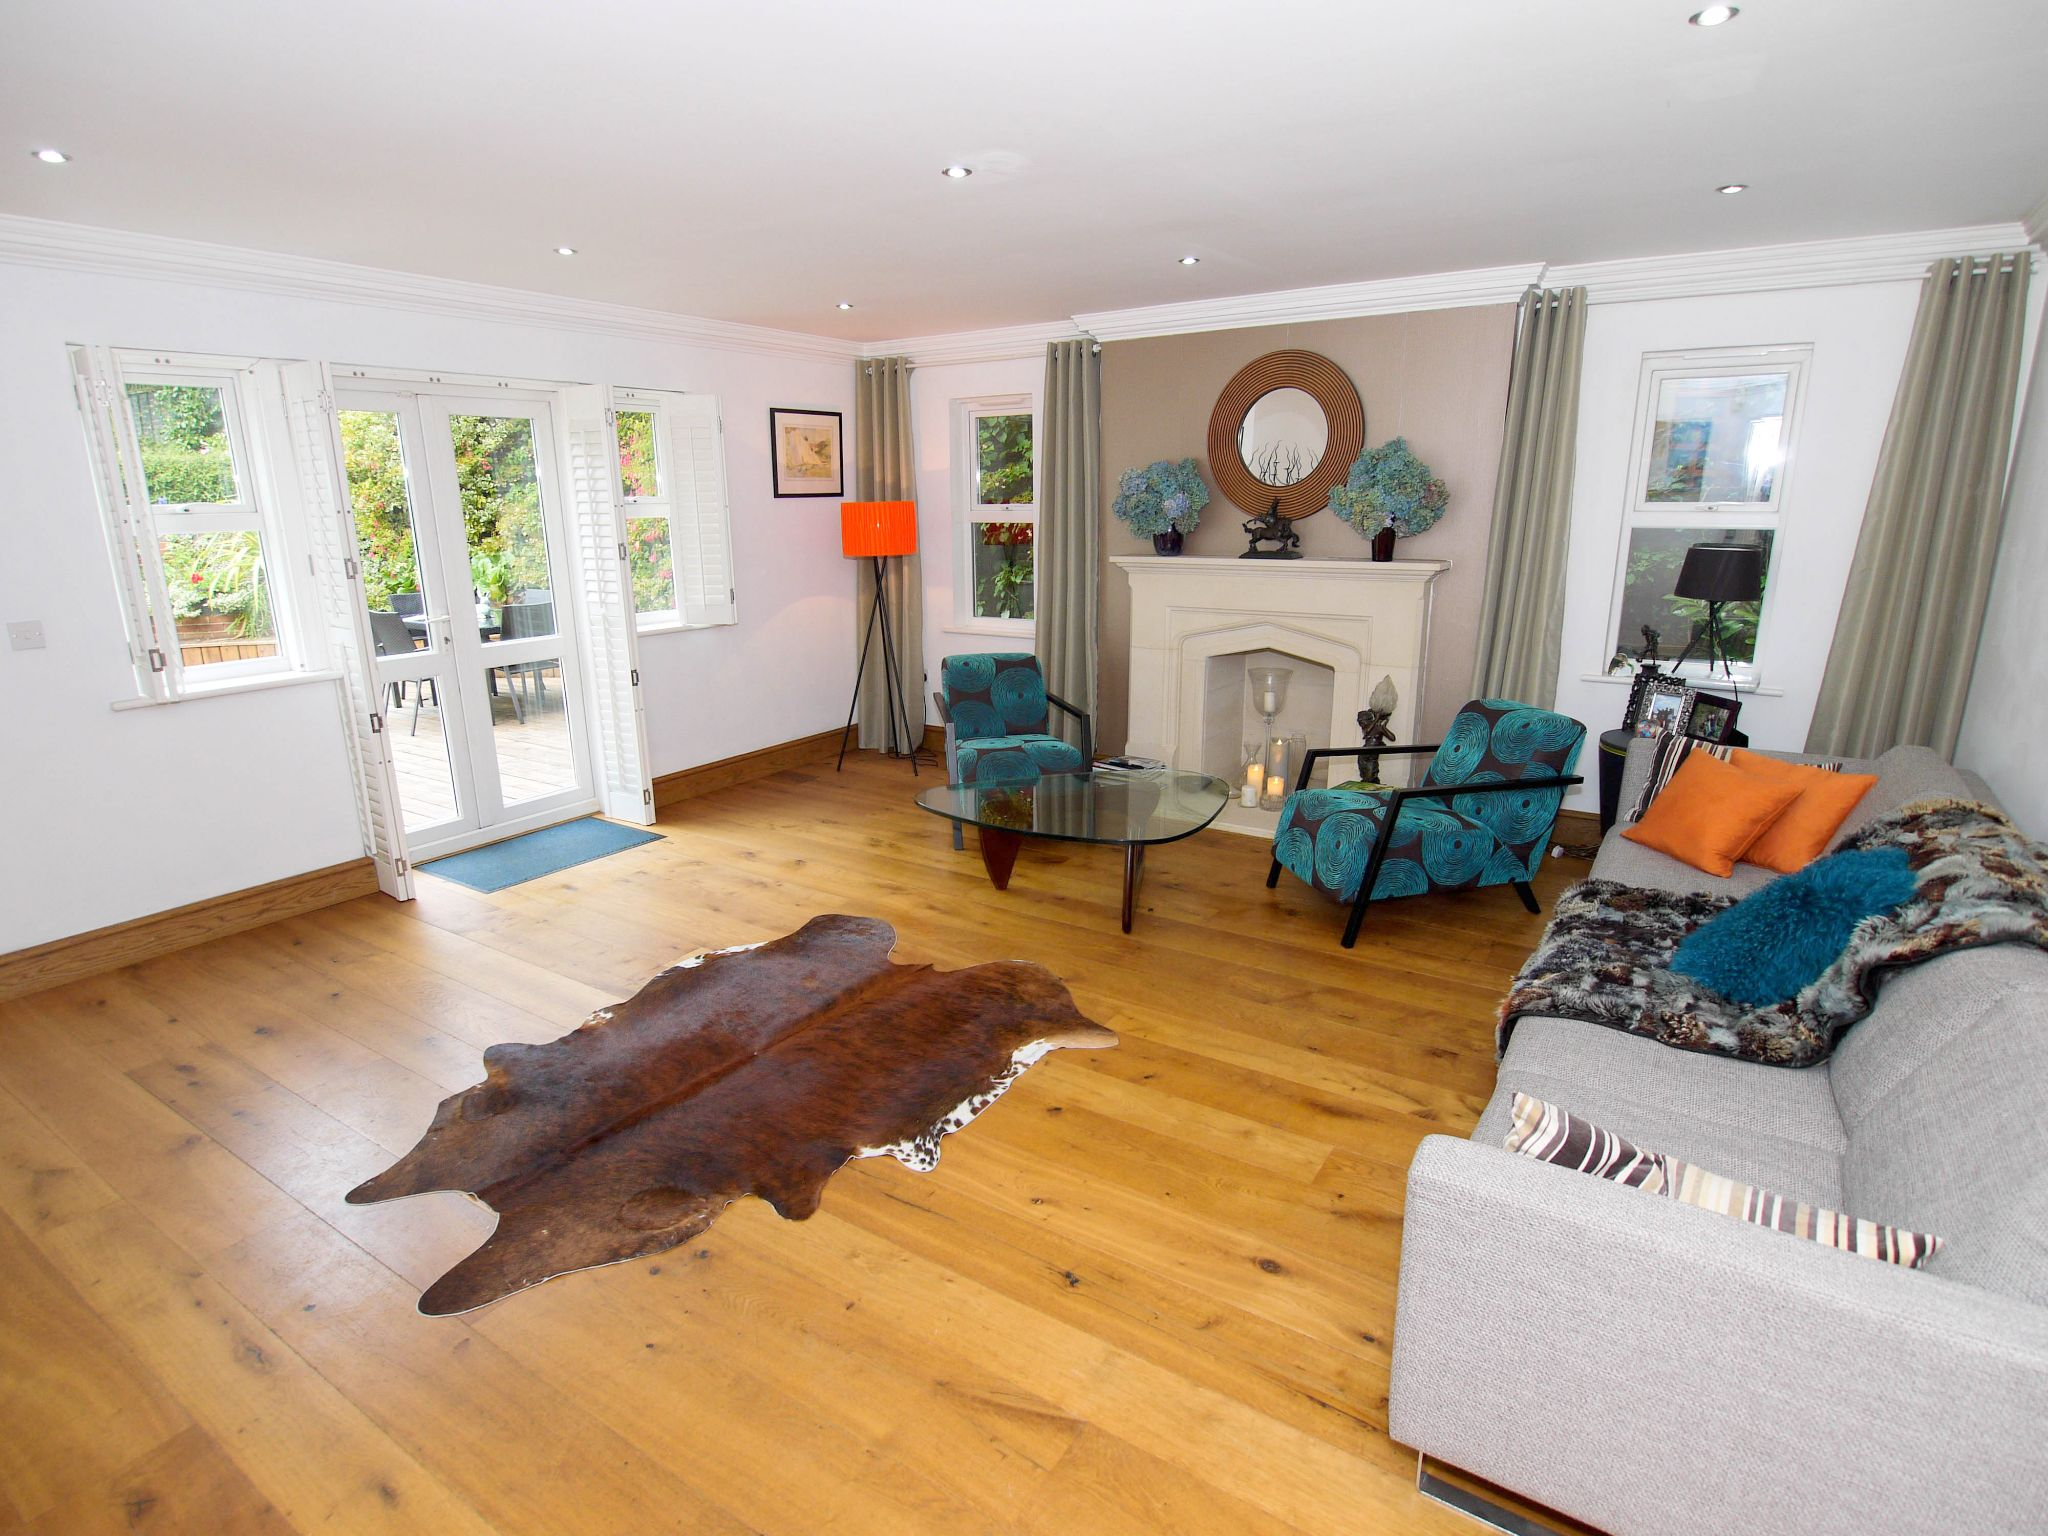 6 bedroom detached house For Sale in Sevenoaks - Photograph 3